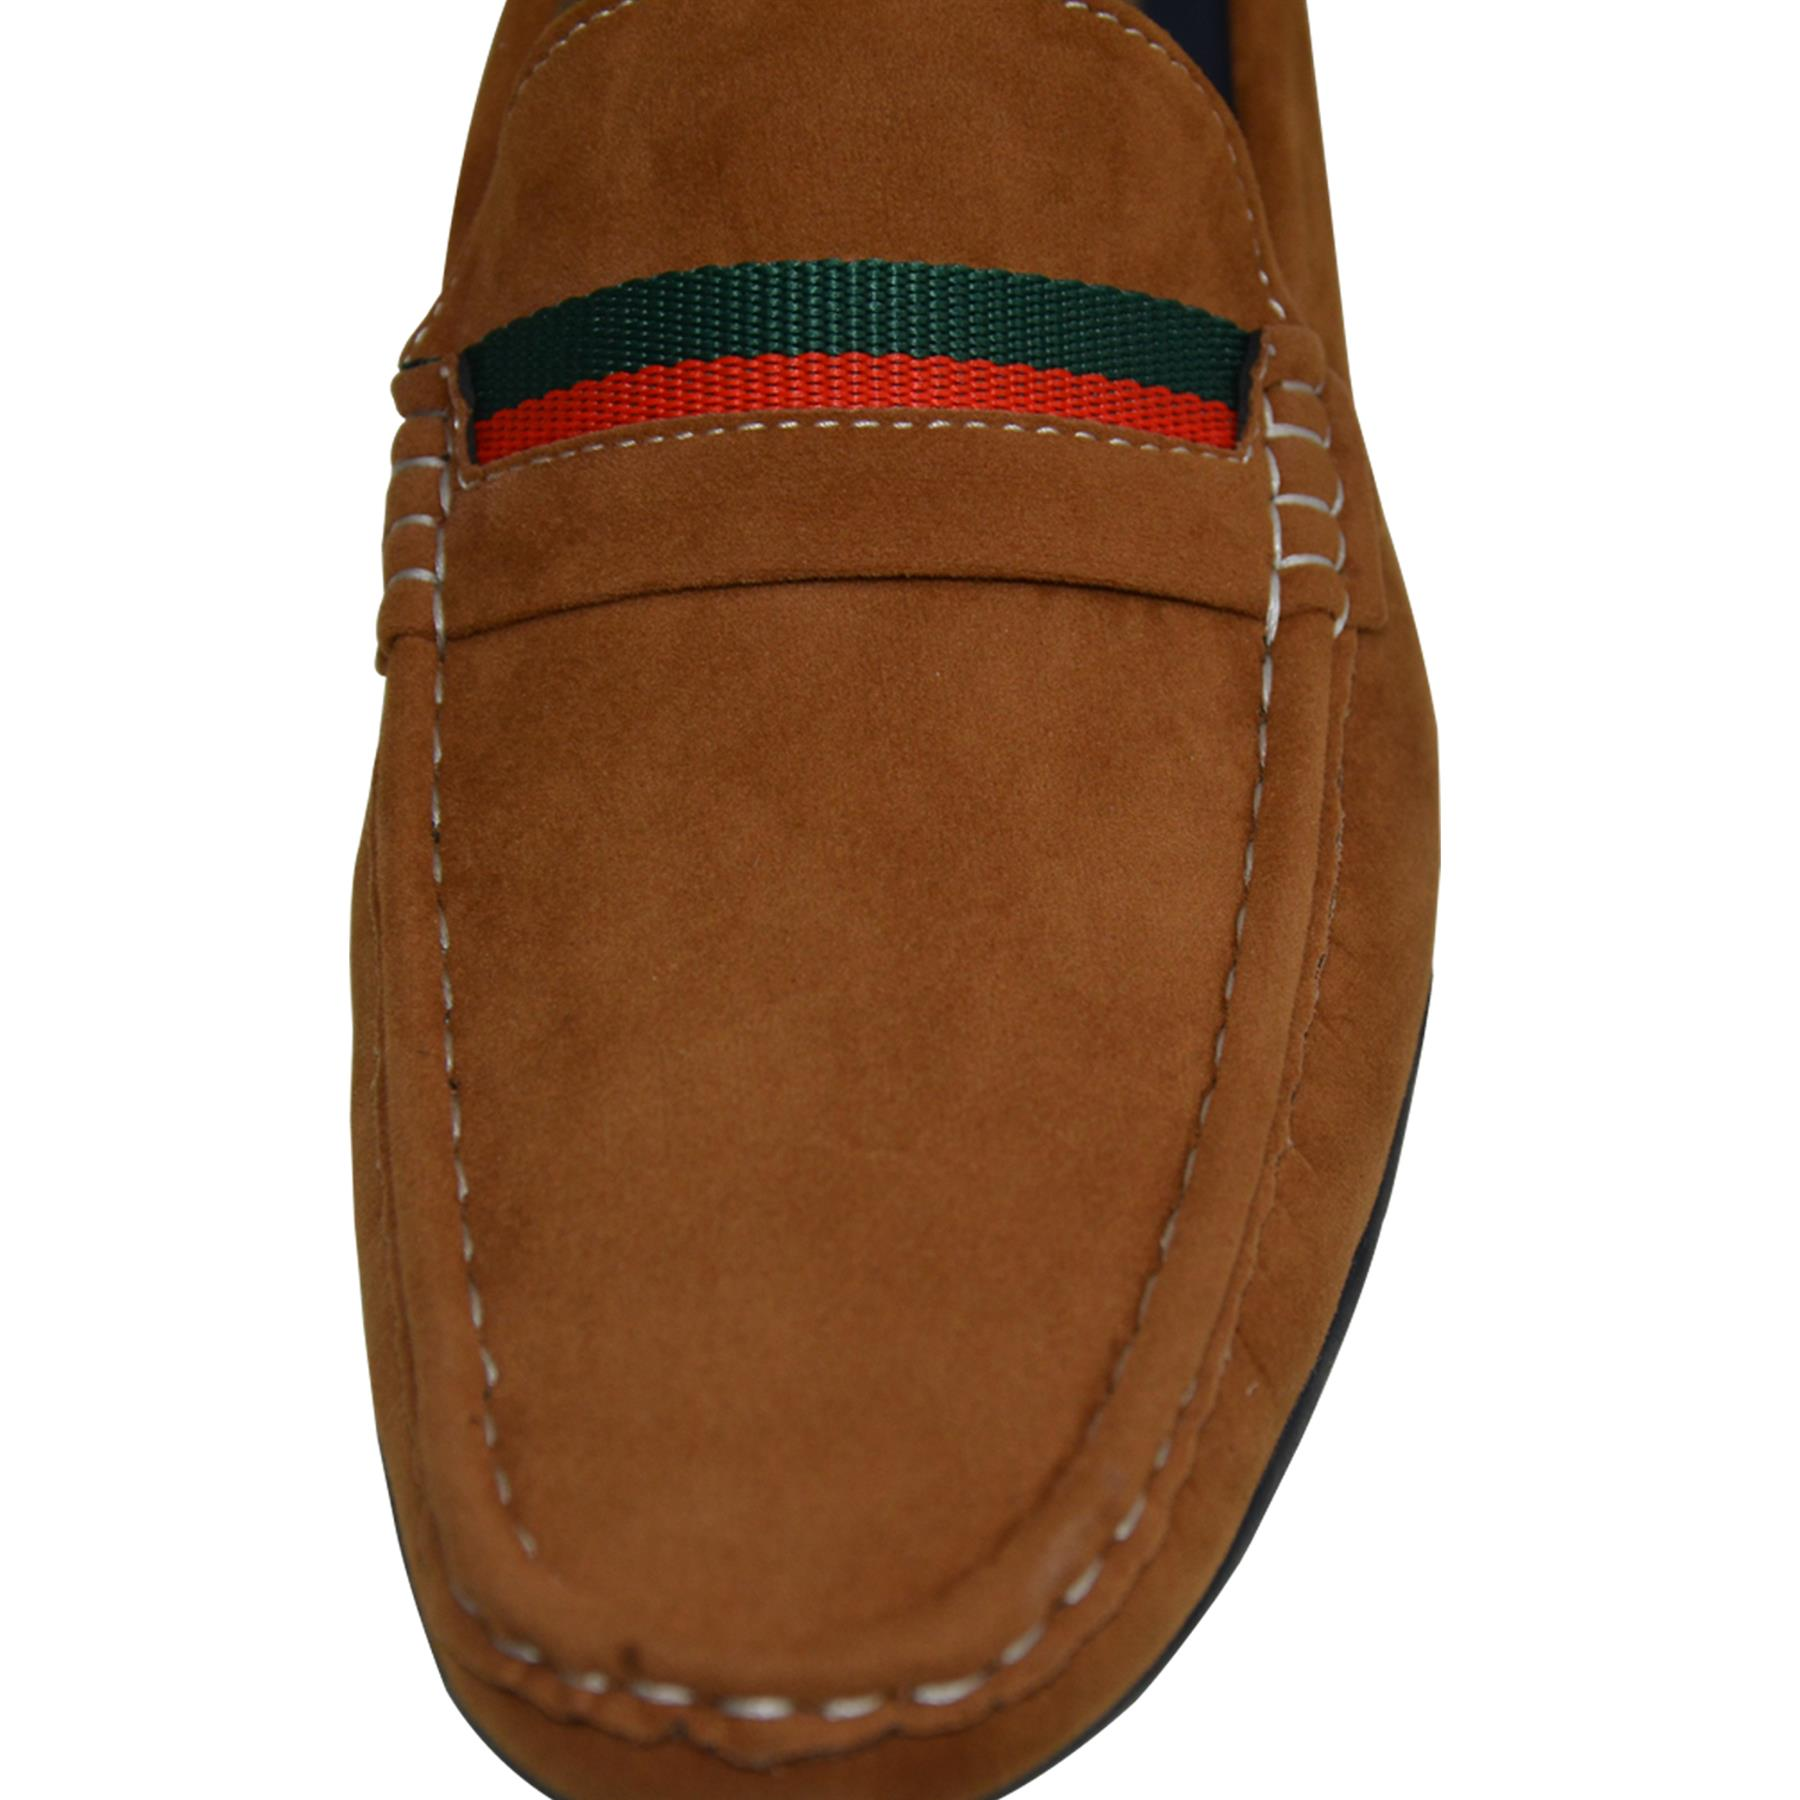 Mens-Slip-Ons-Shoes-Boat-Deck-Driving-Smart-Buckle-Moccasins-Suede-Look-Loafers thumbnail 32